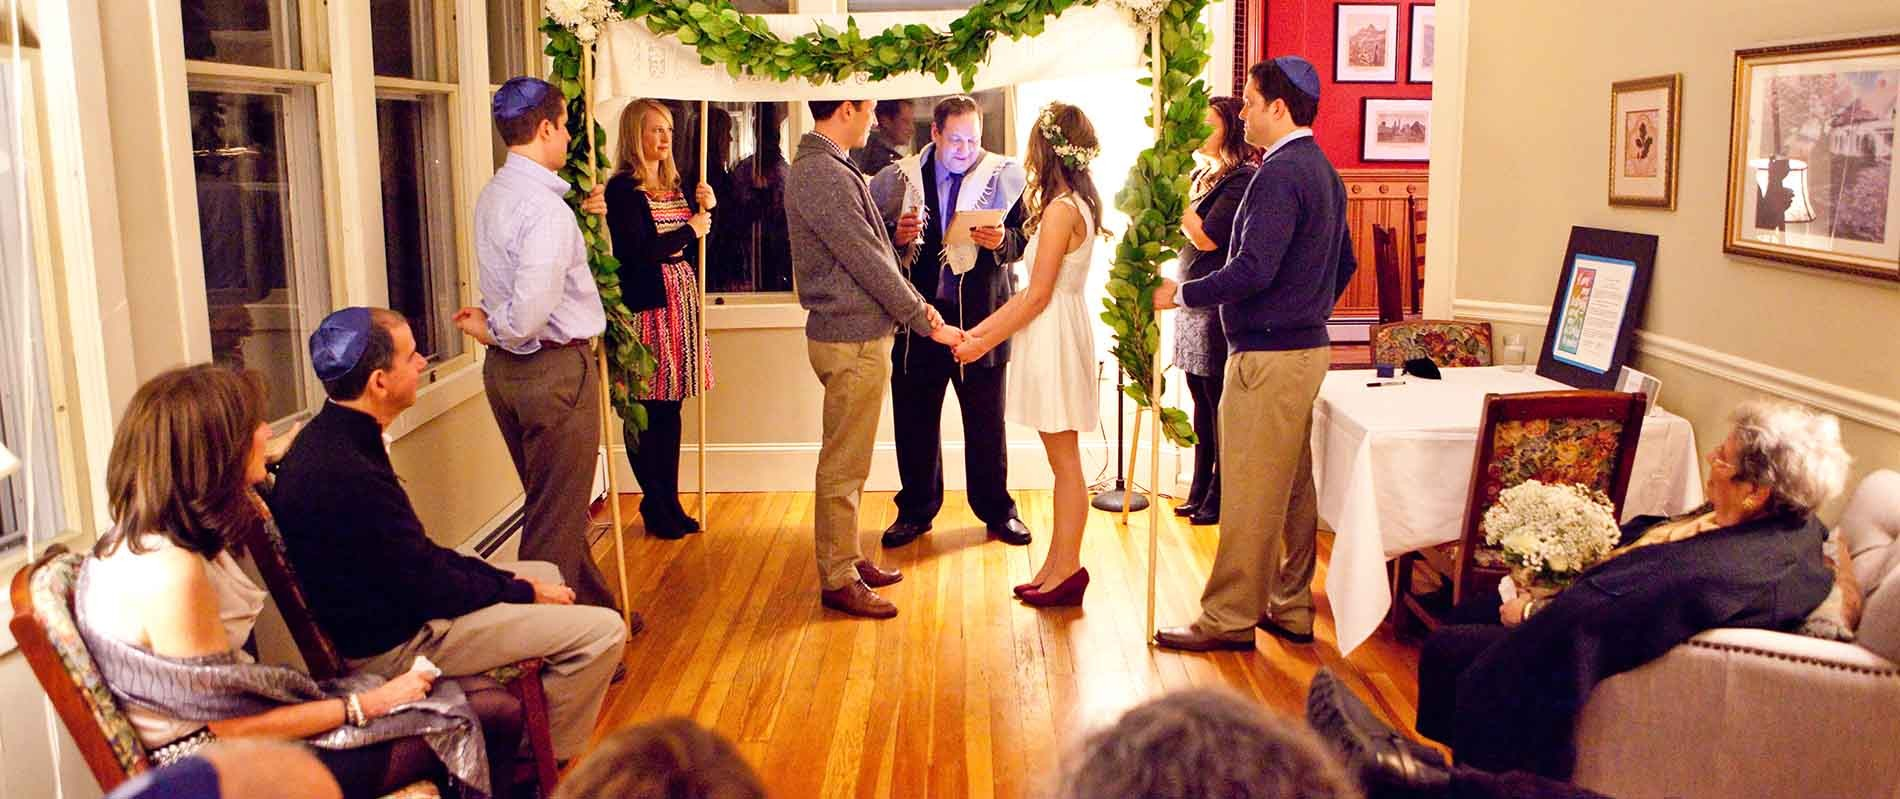 Burlington VT Intimate Wedding and Elopements